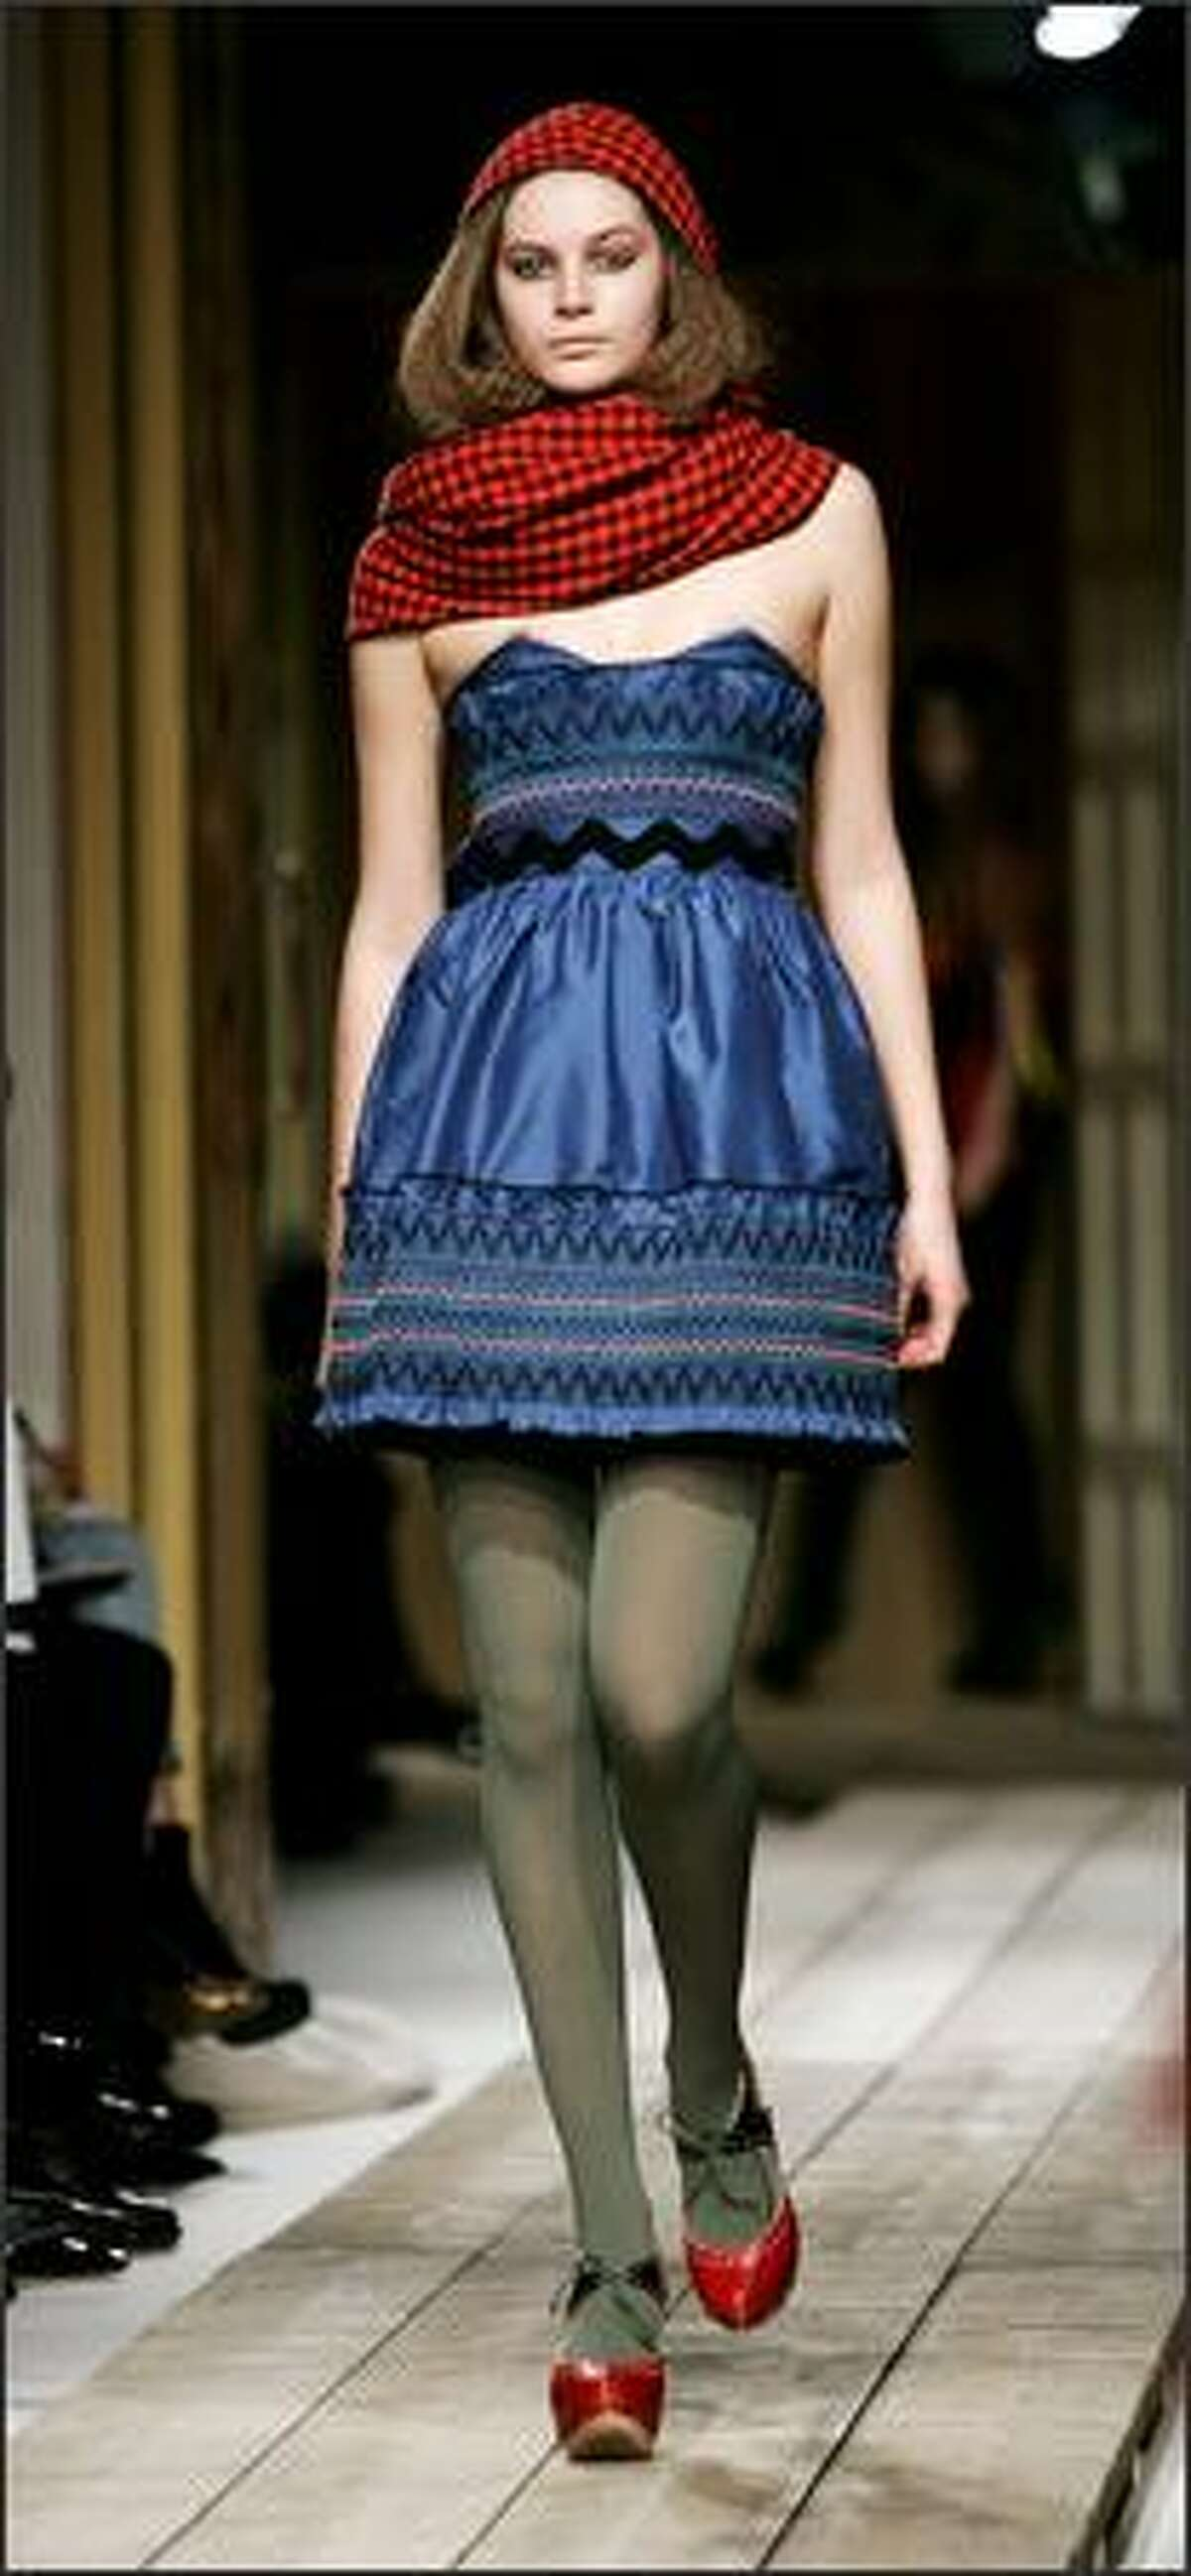 A model walks down the runway during the Luella fall 2008 show at Claridges Hotel in London.